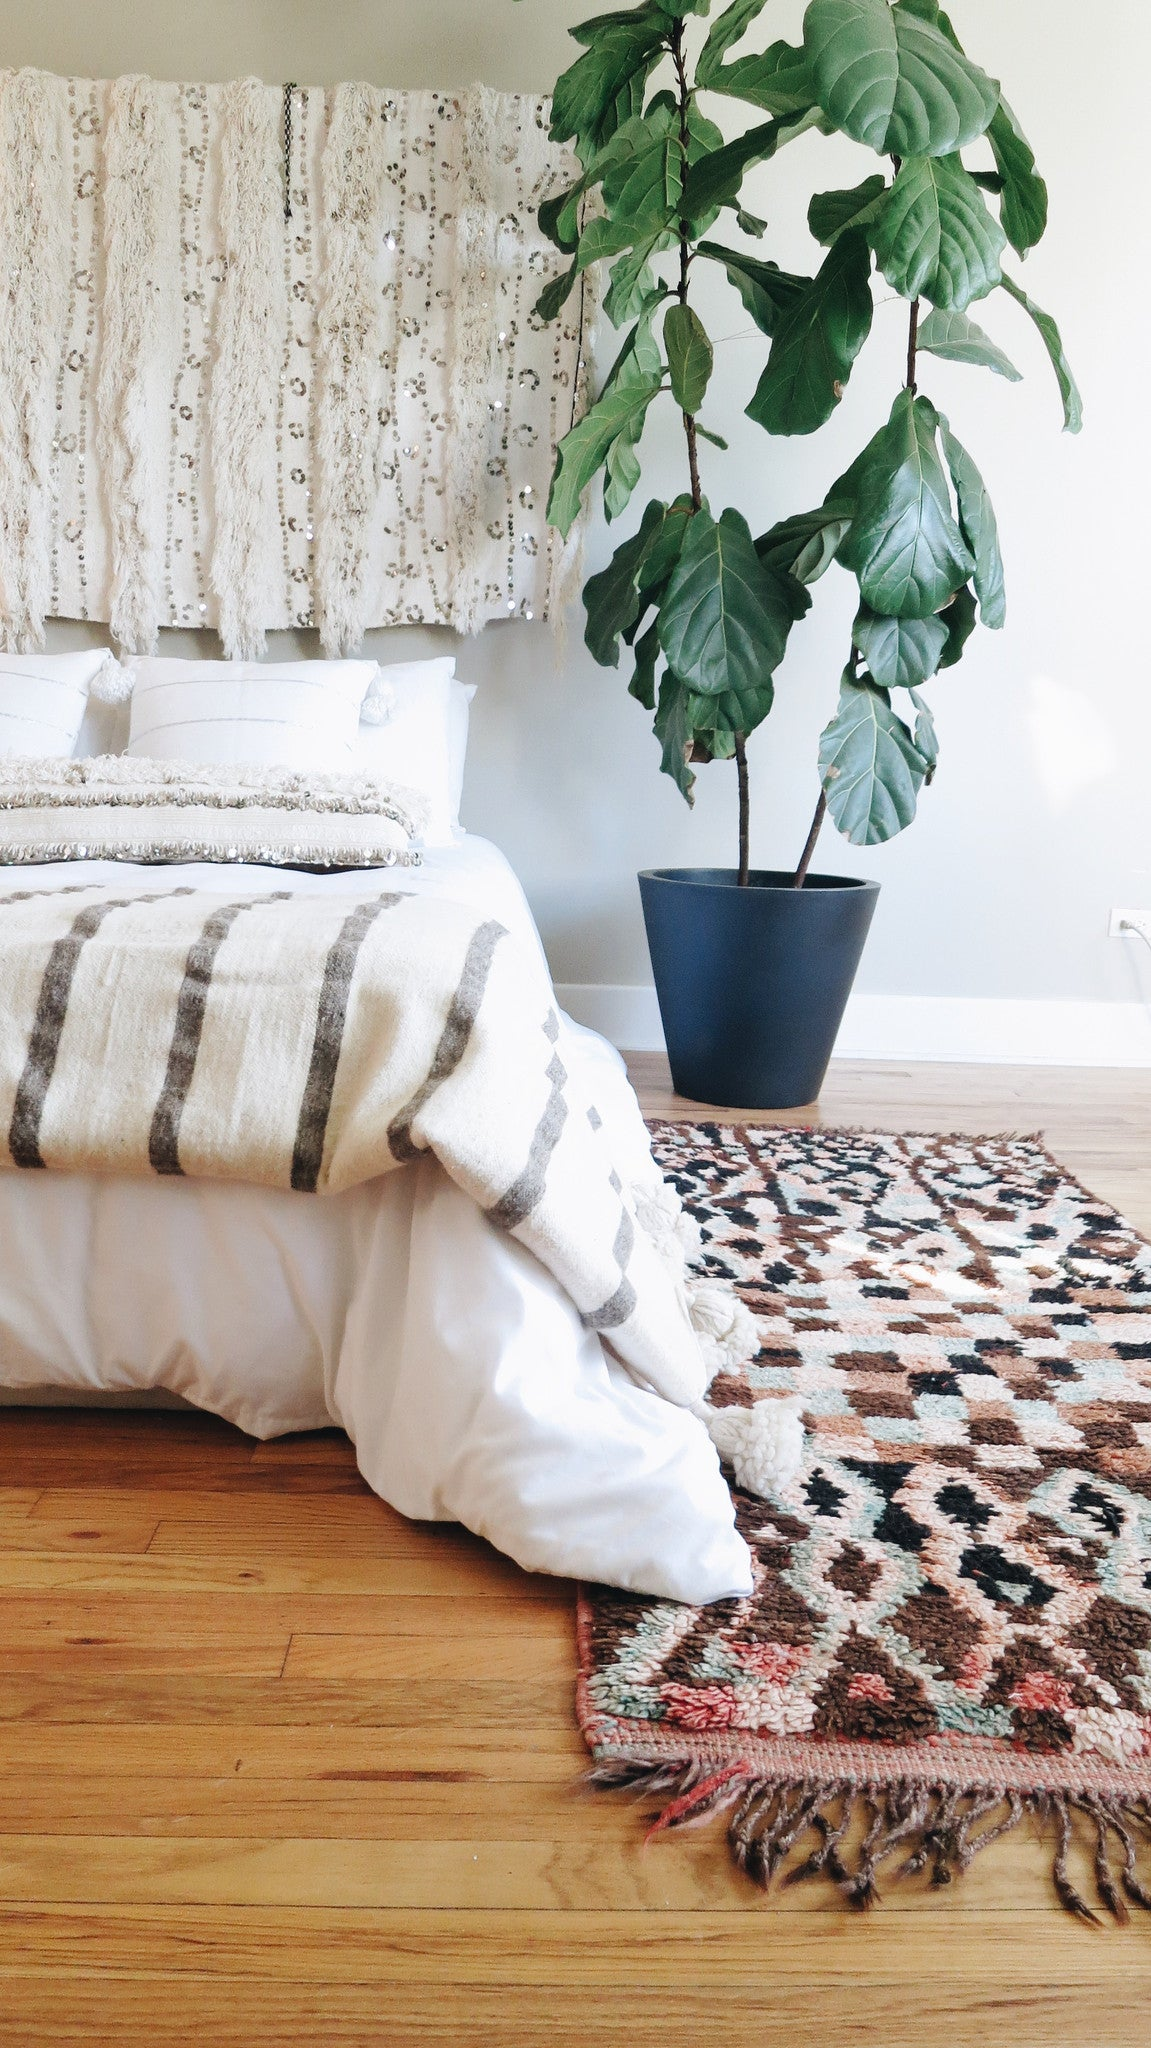 'Rag & Bone' Moroccan Pom Blanket - Maven Collection